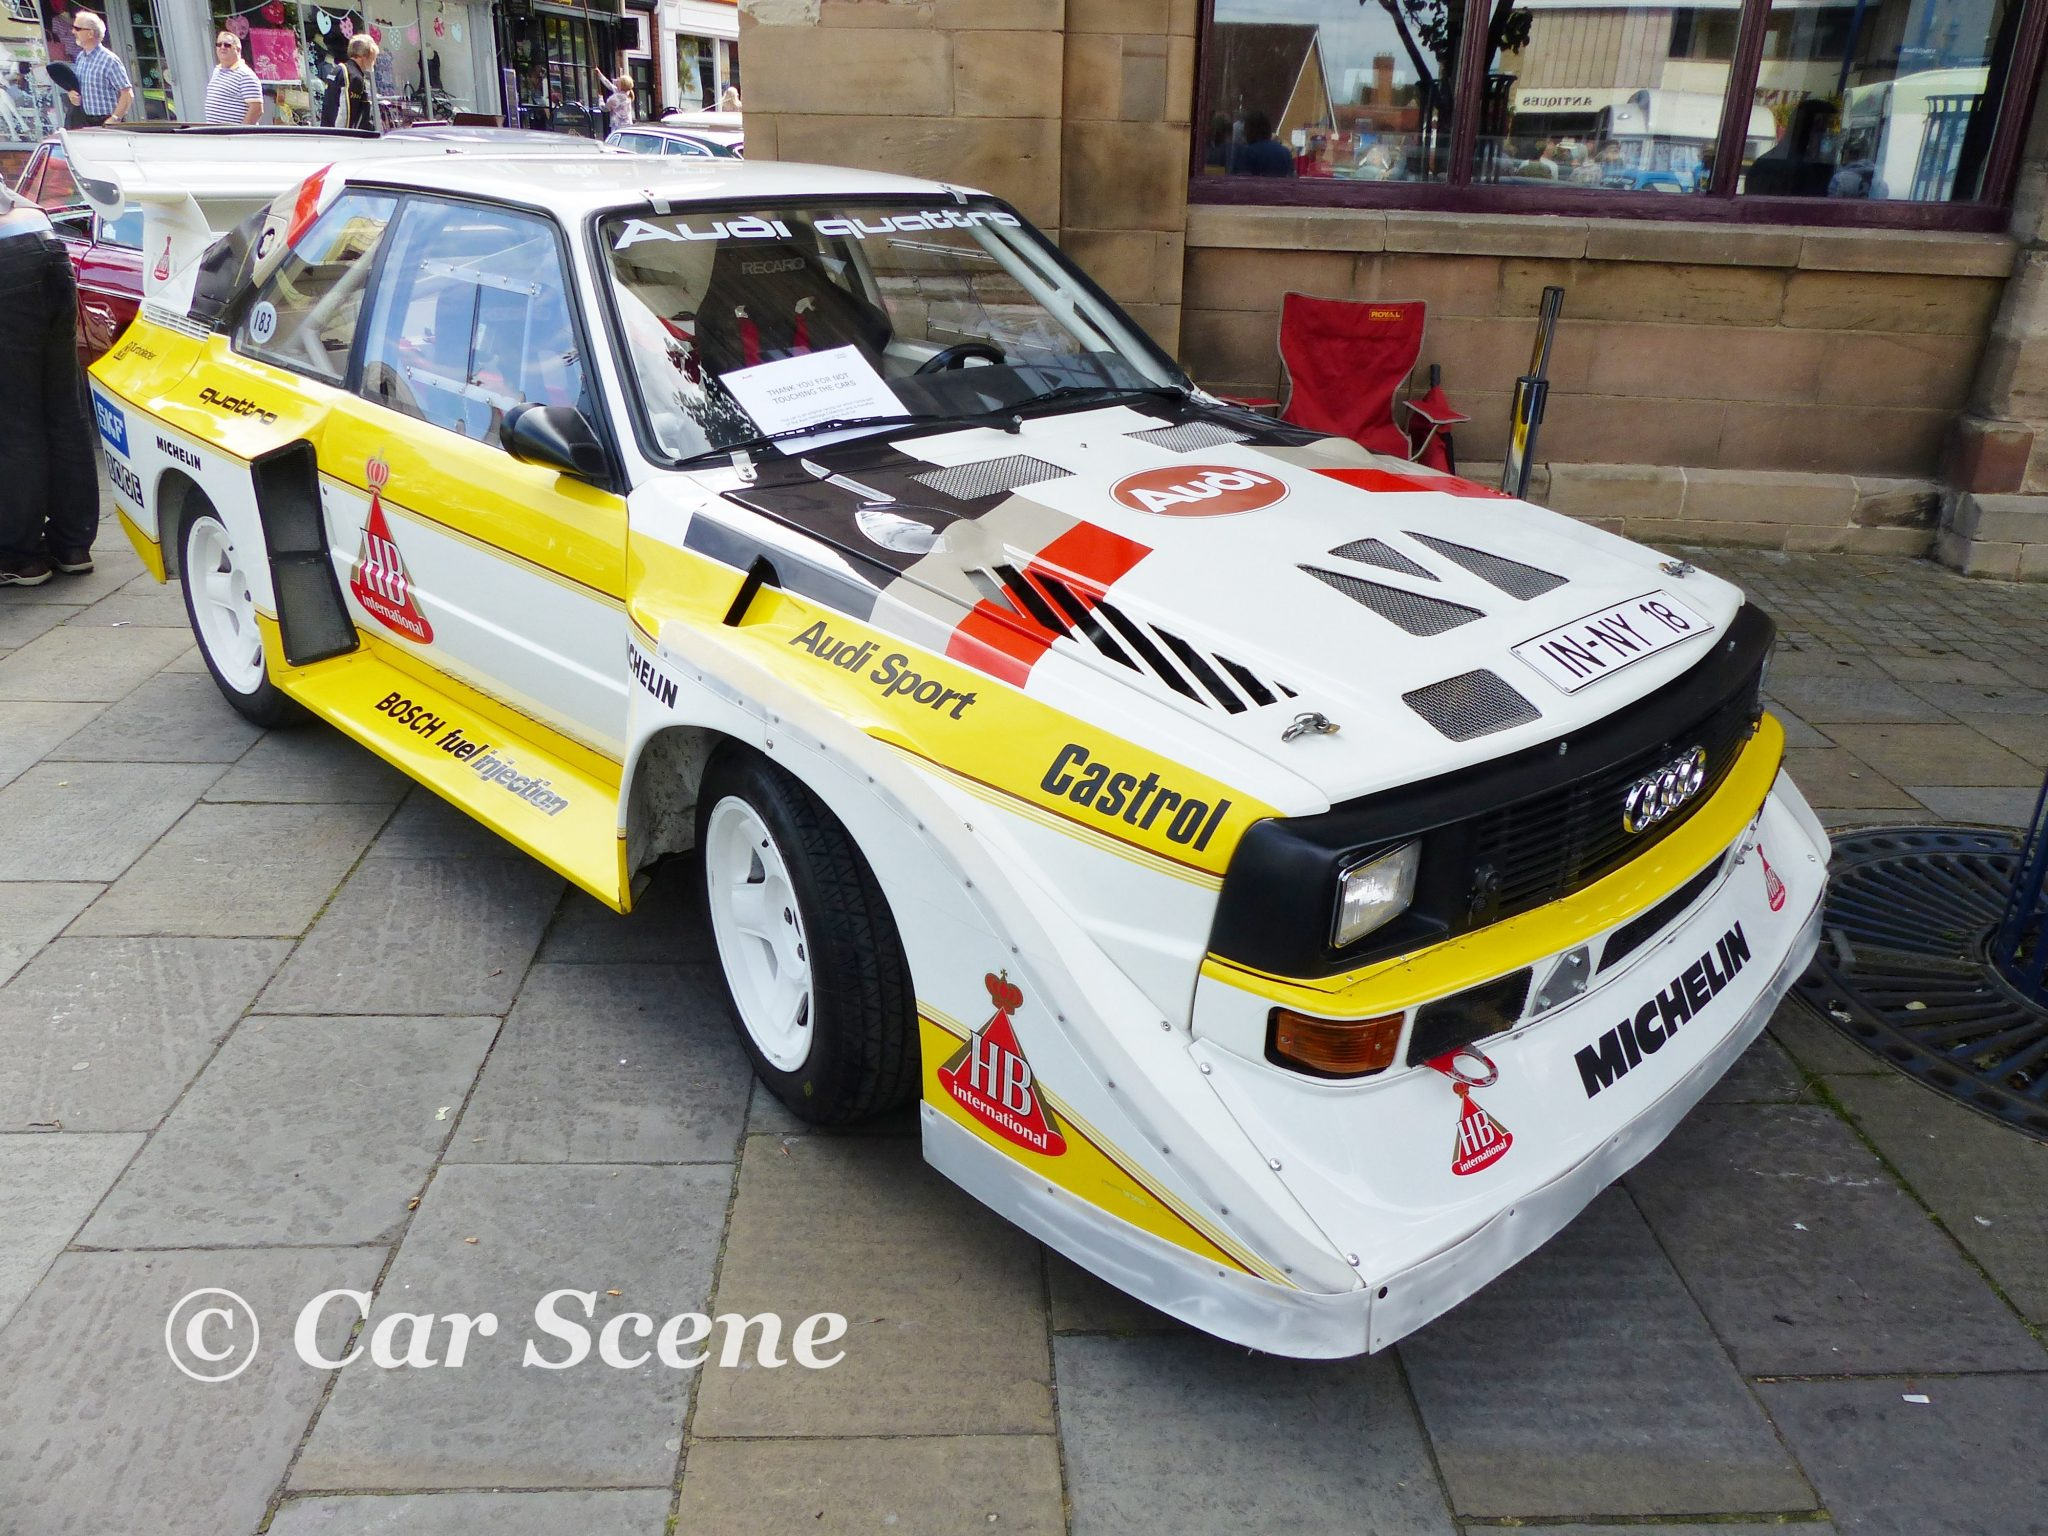 1982 Audi Quattro S1 Group B Rally Car front three quarters view